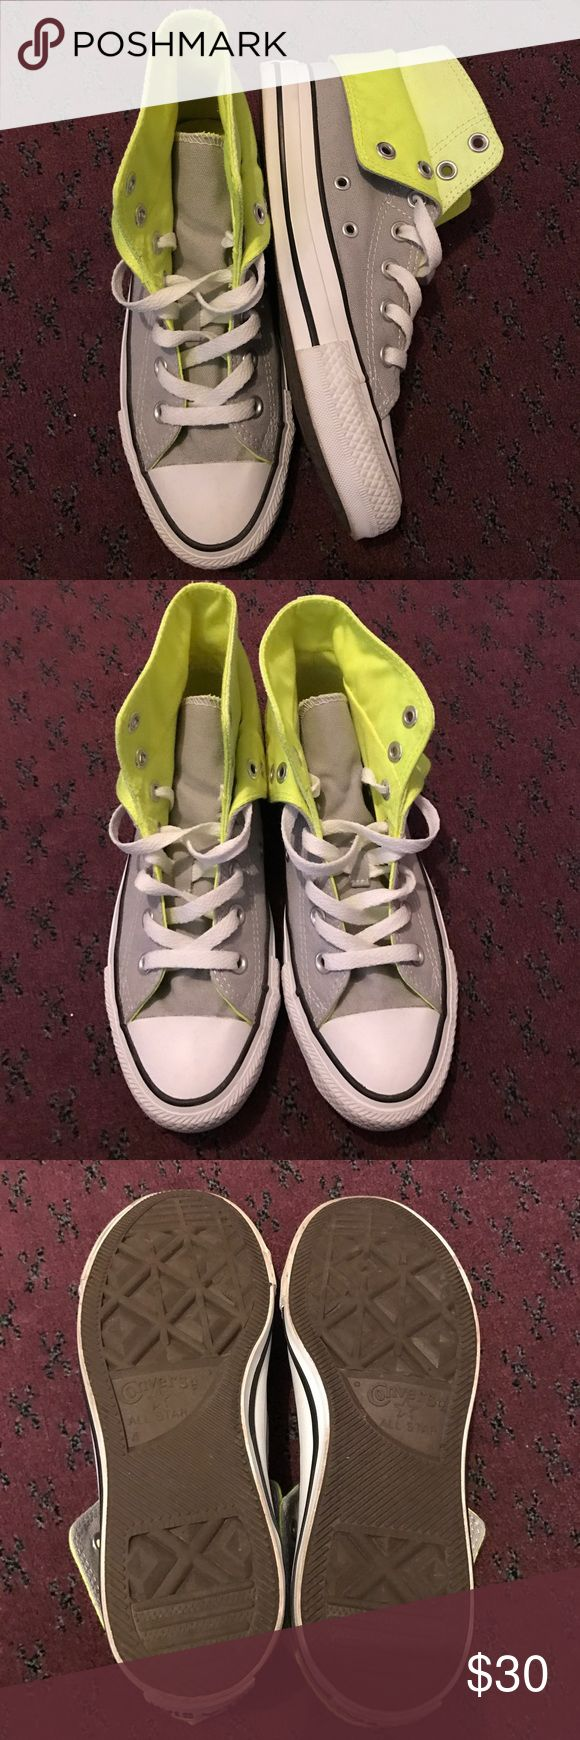 Grey Neon Converse High Tops 4 Worn but great condition!! Super cute and hard to find! Some wear and dirty look around the white edges (Please see pics!) Size 4. Ask me any questions!!! 💕 Converse Shoes Sneakers